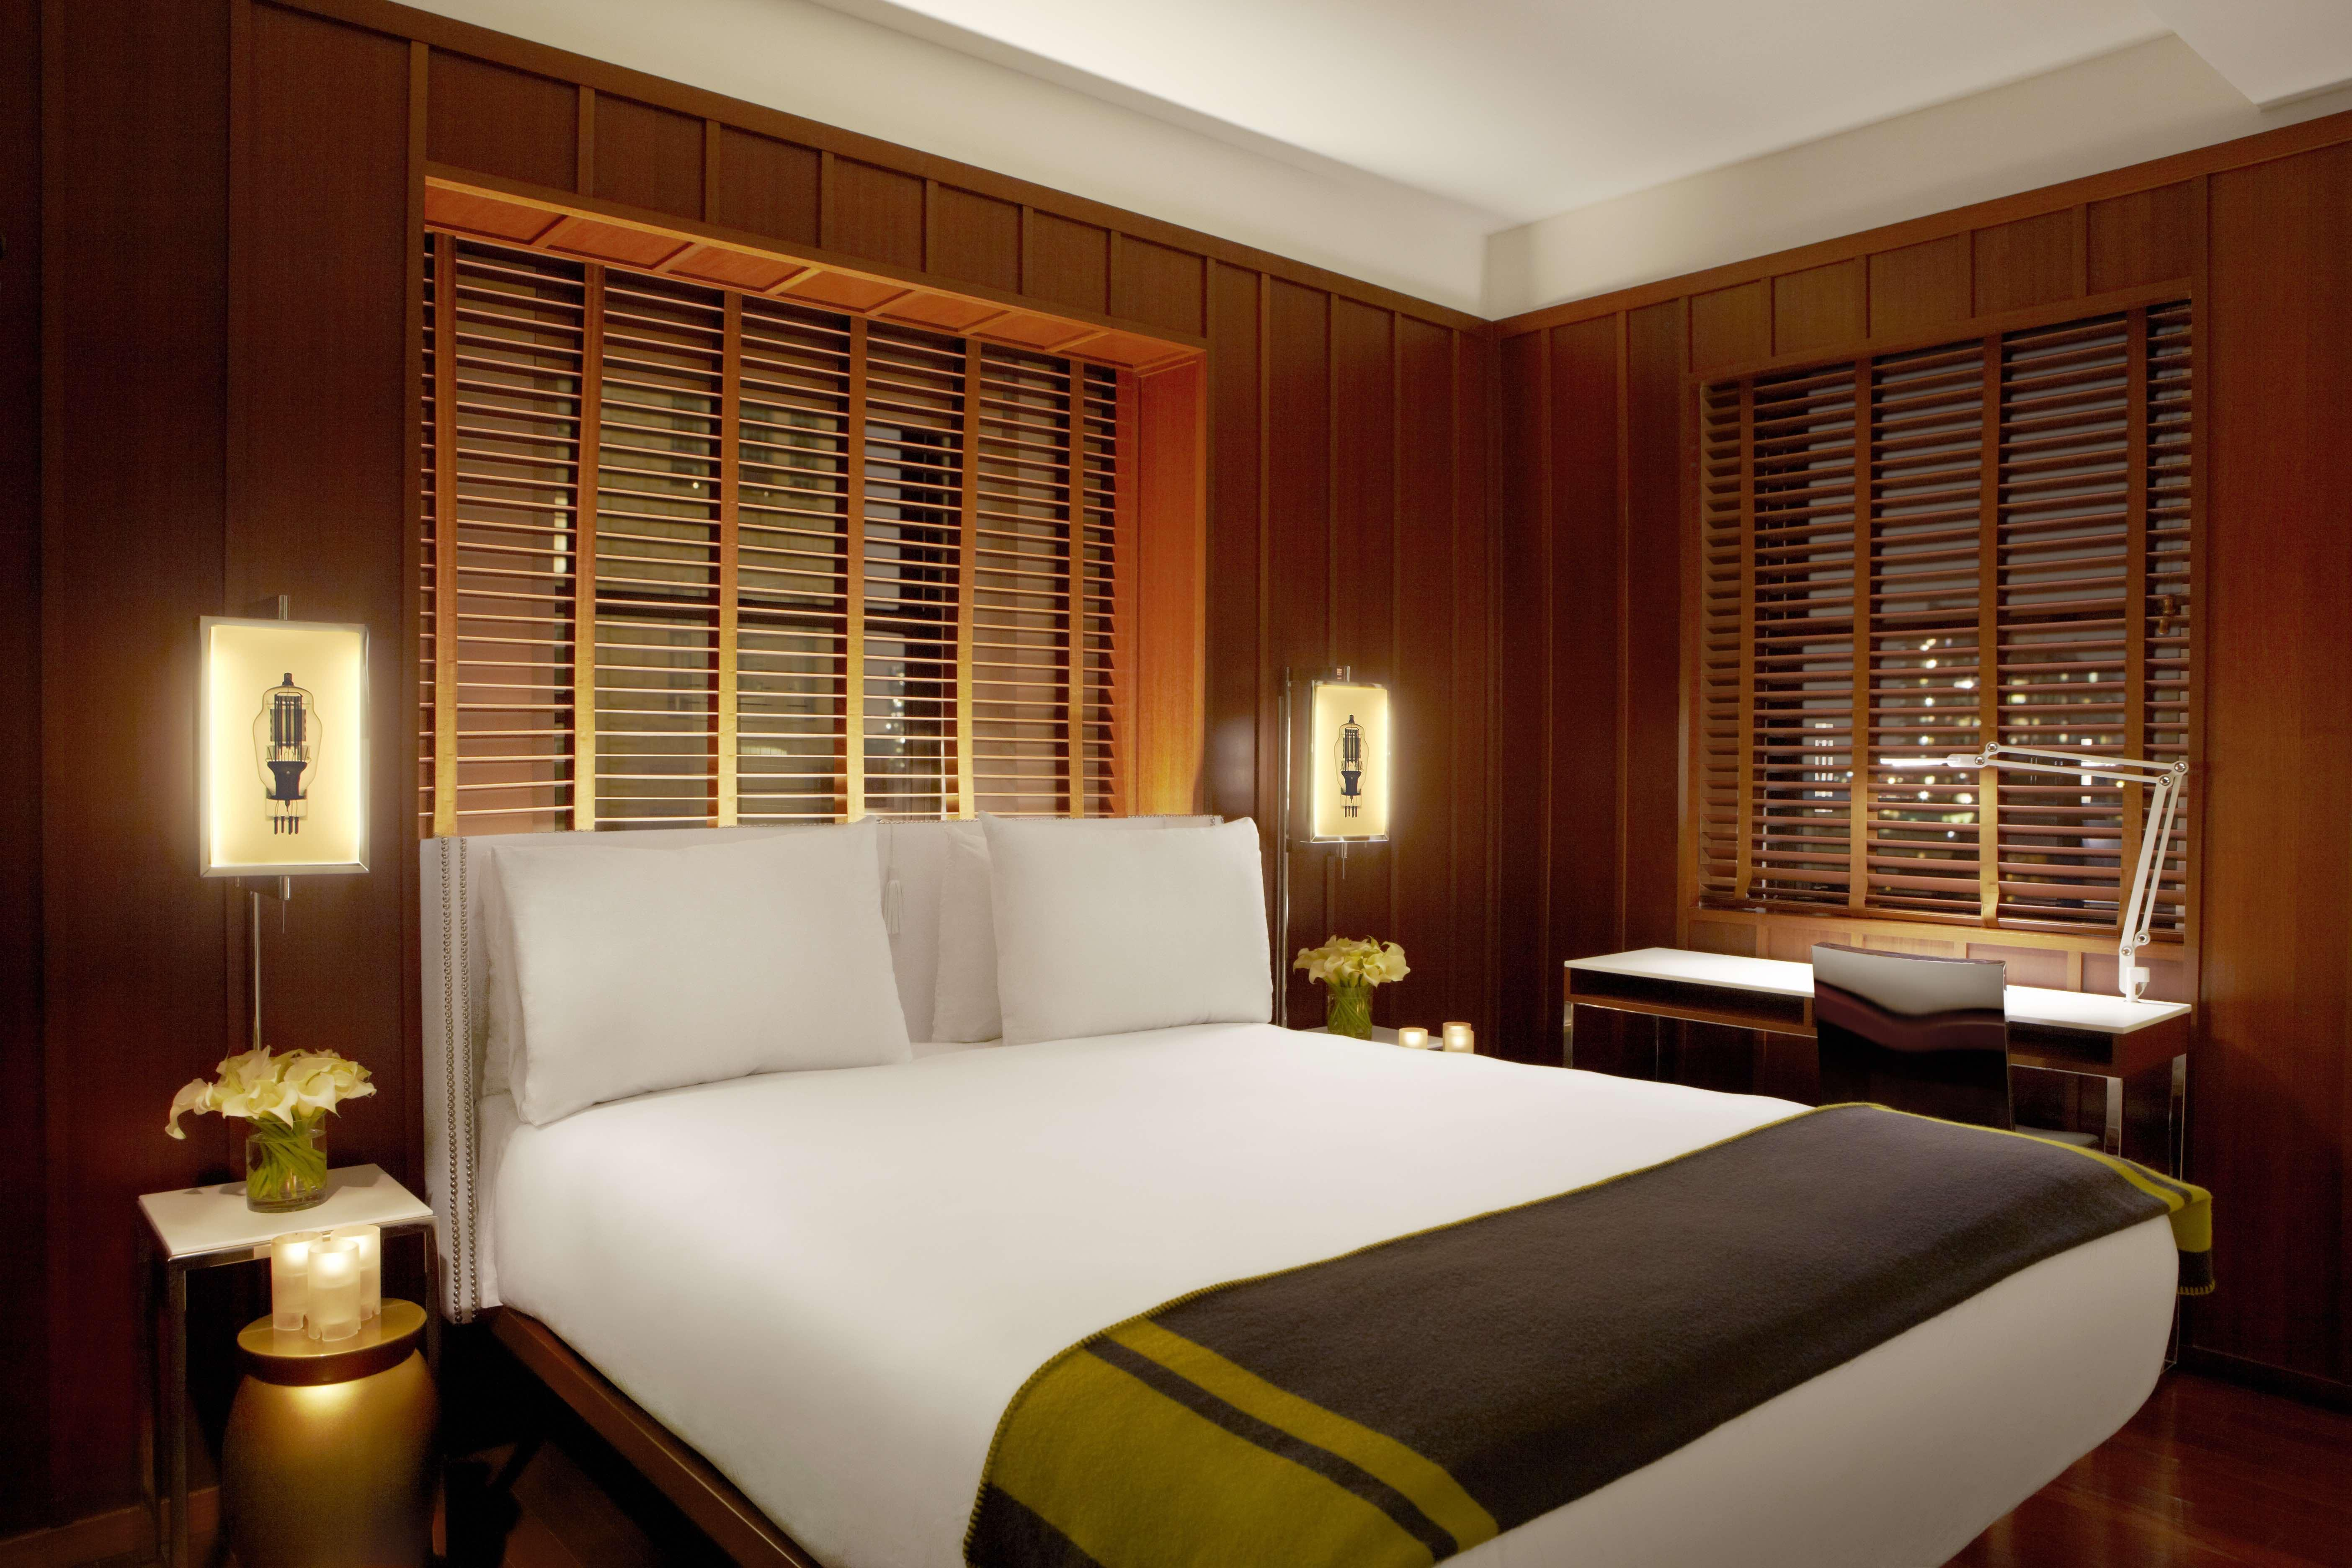 superior hotel room with large bed and dark wood walls